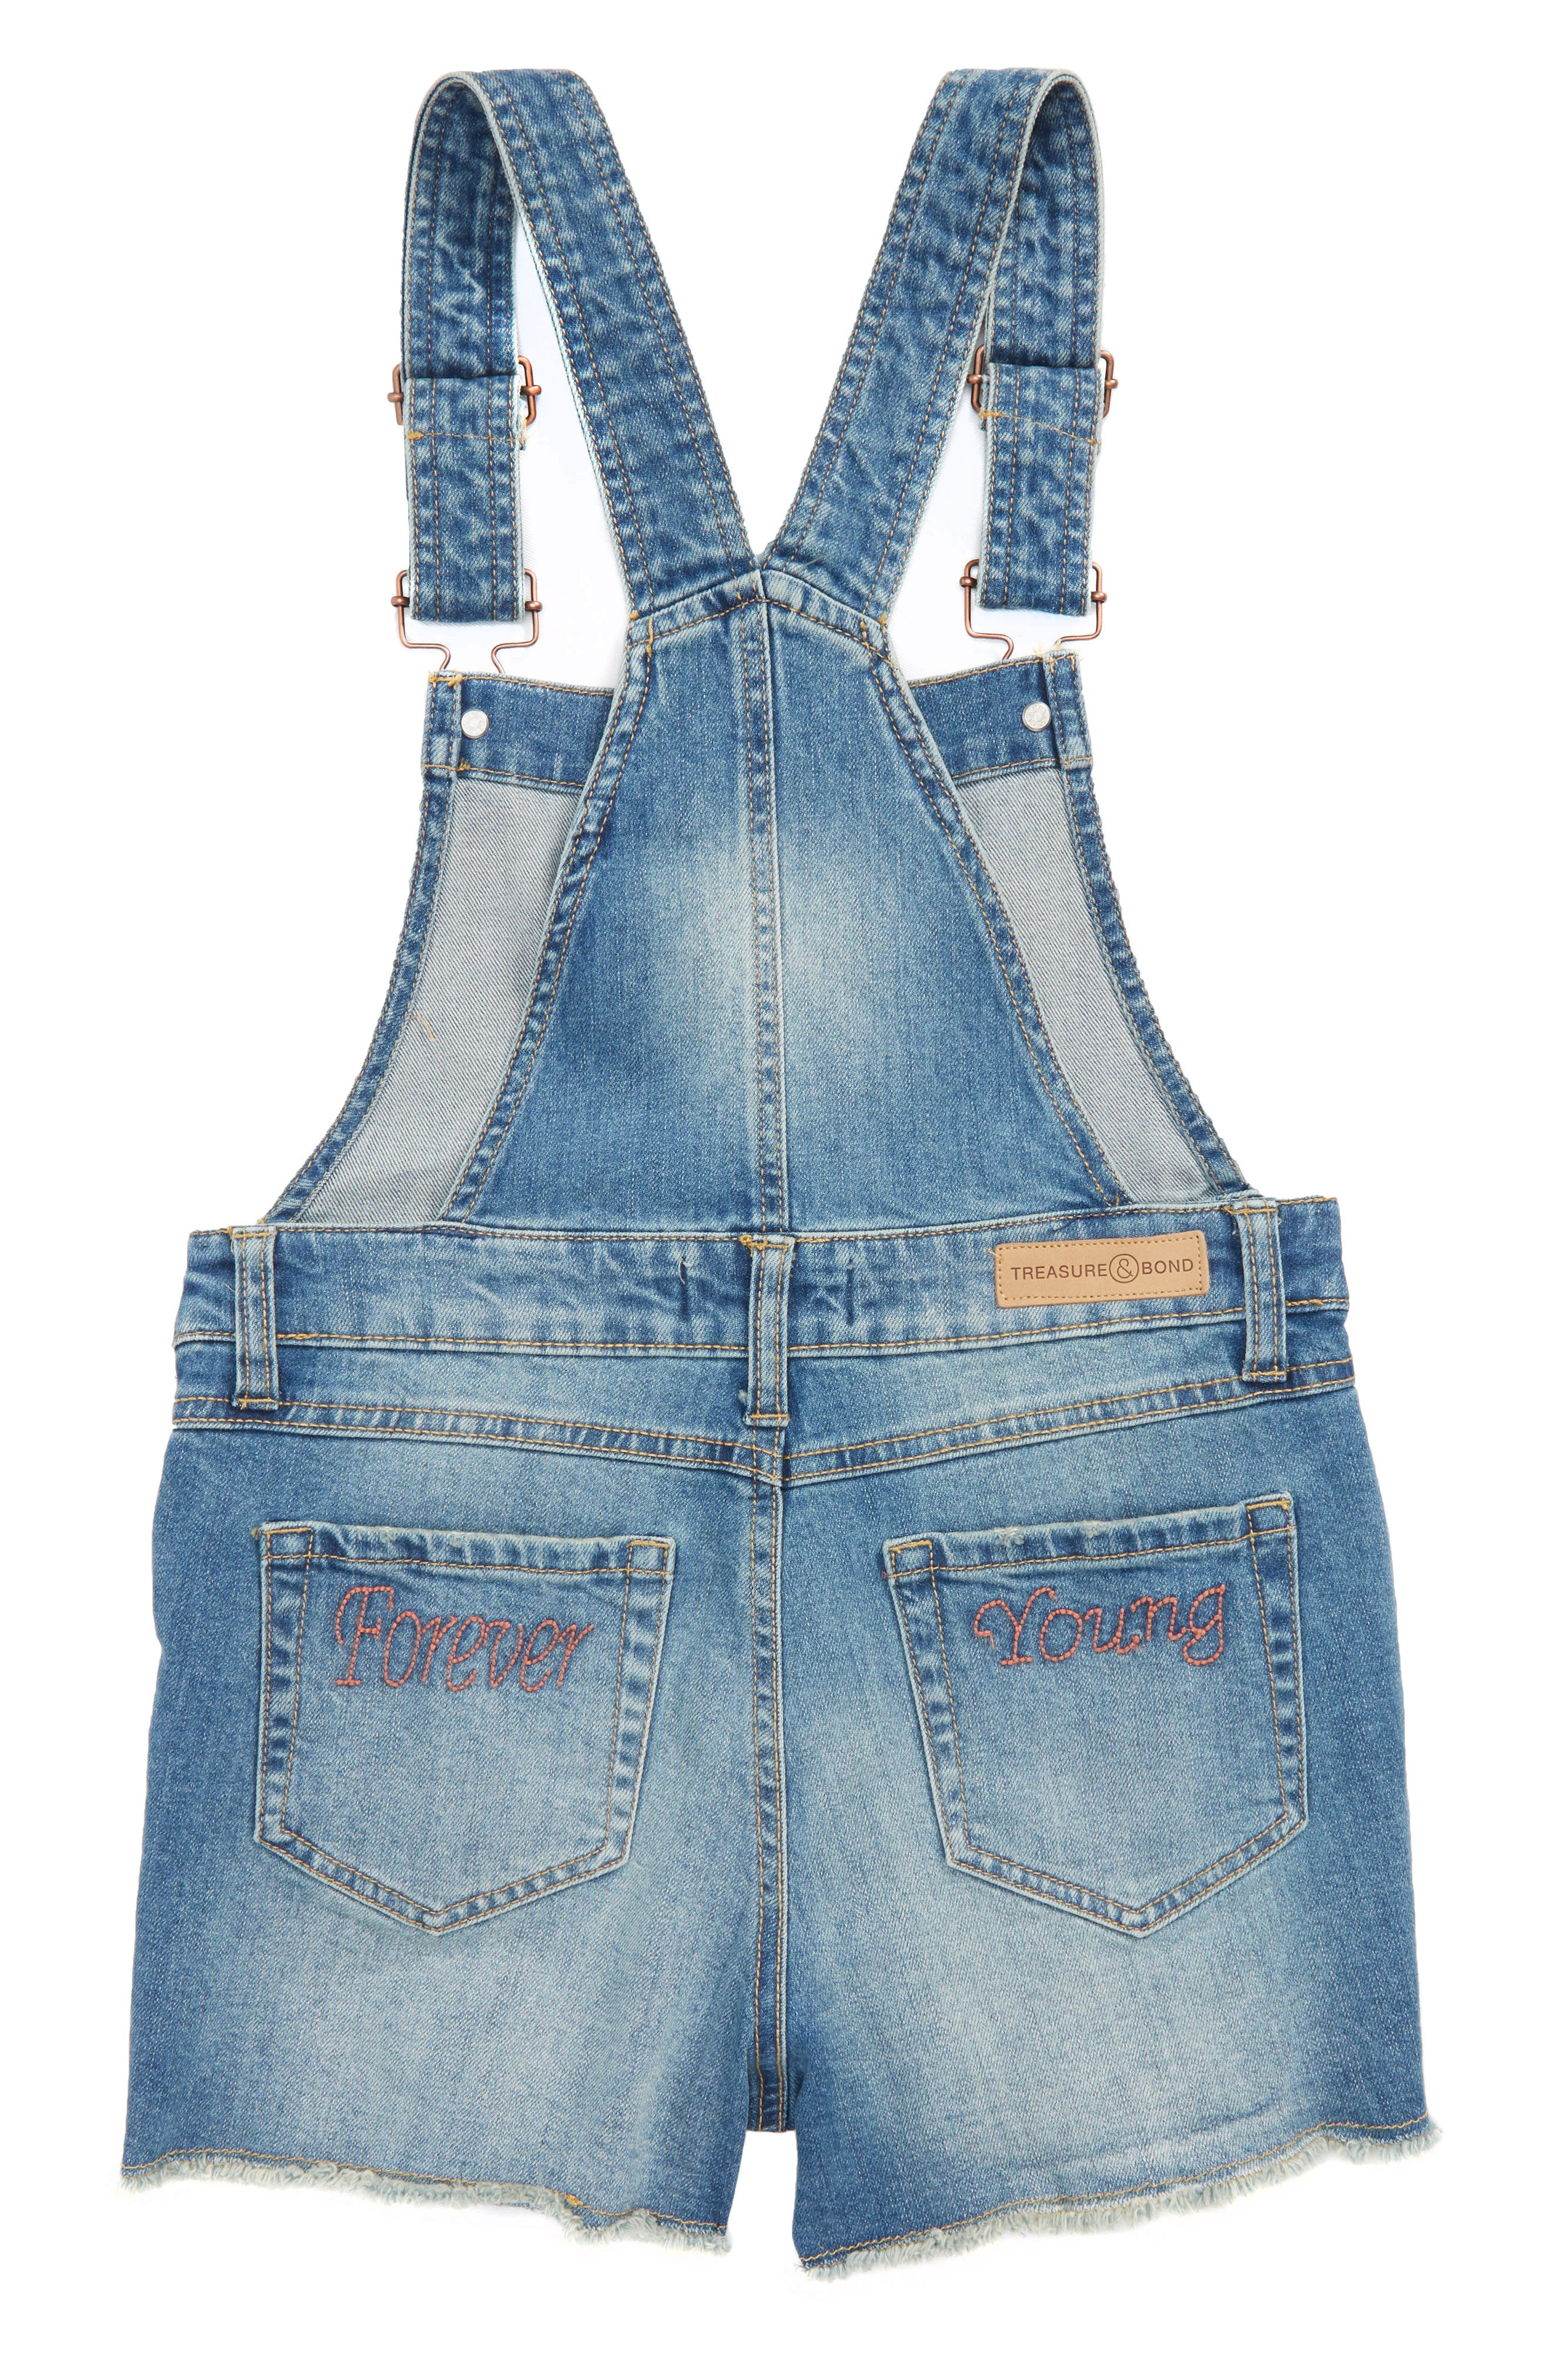 Distressed Denim Overall Shorts,                             Alternate thumbnail 2, color,                             420